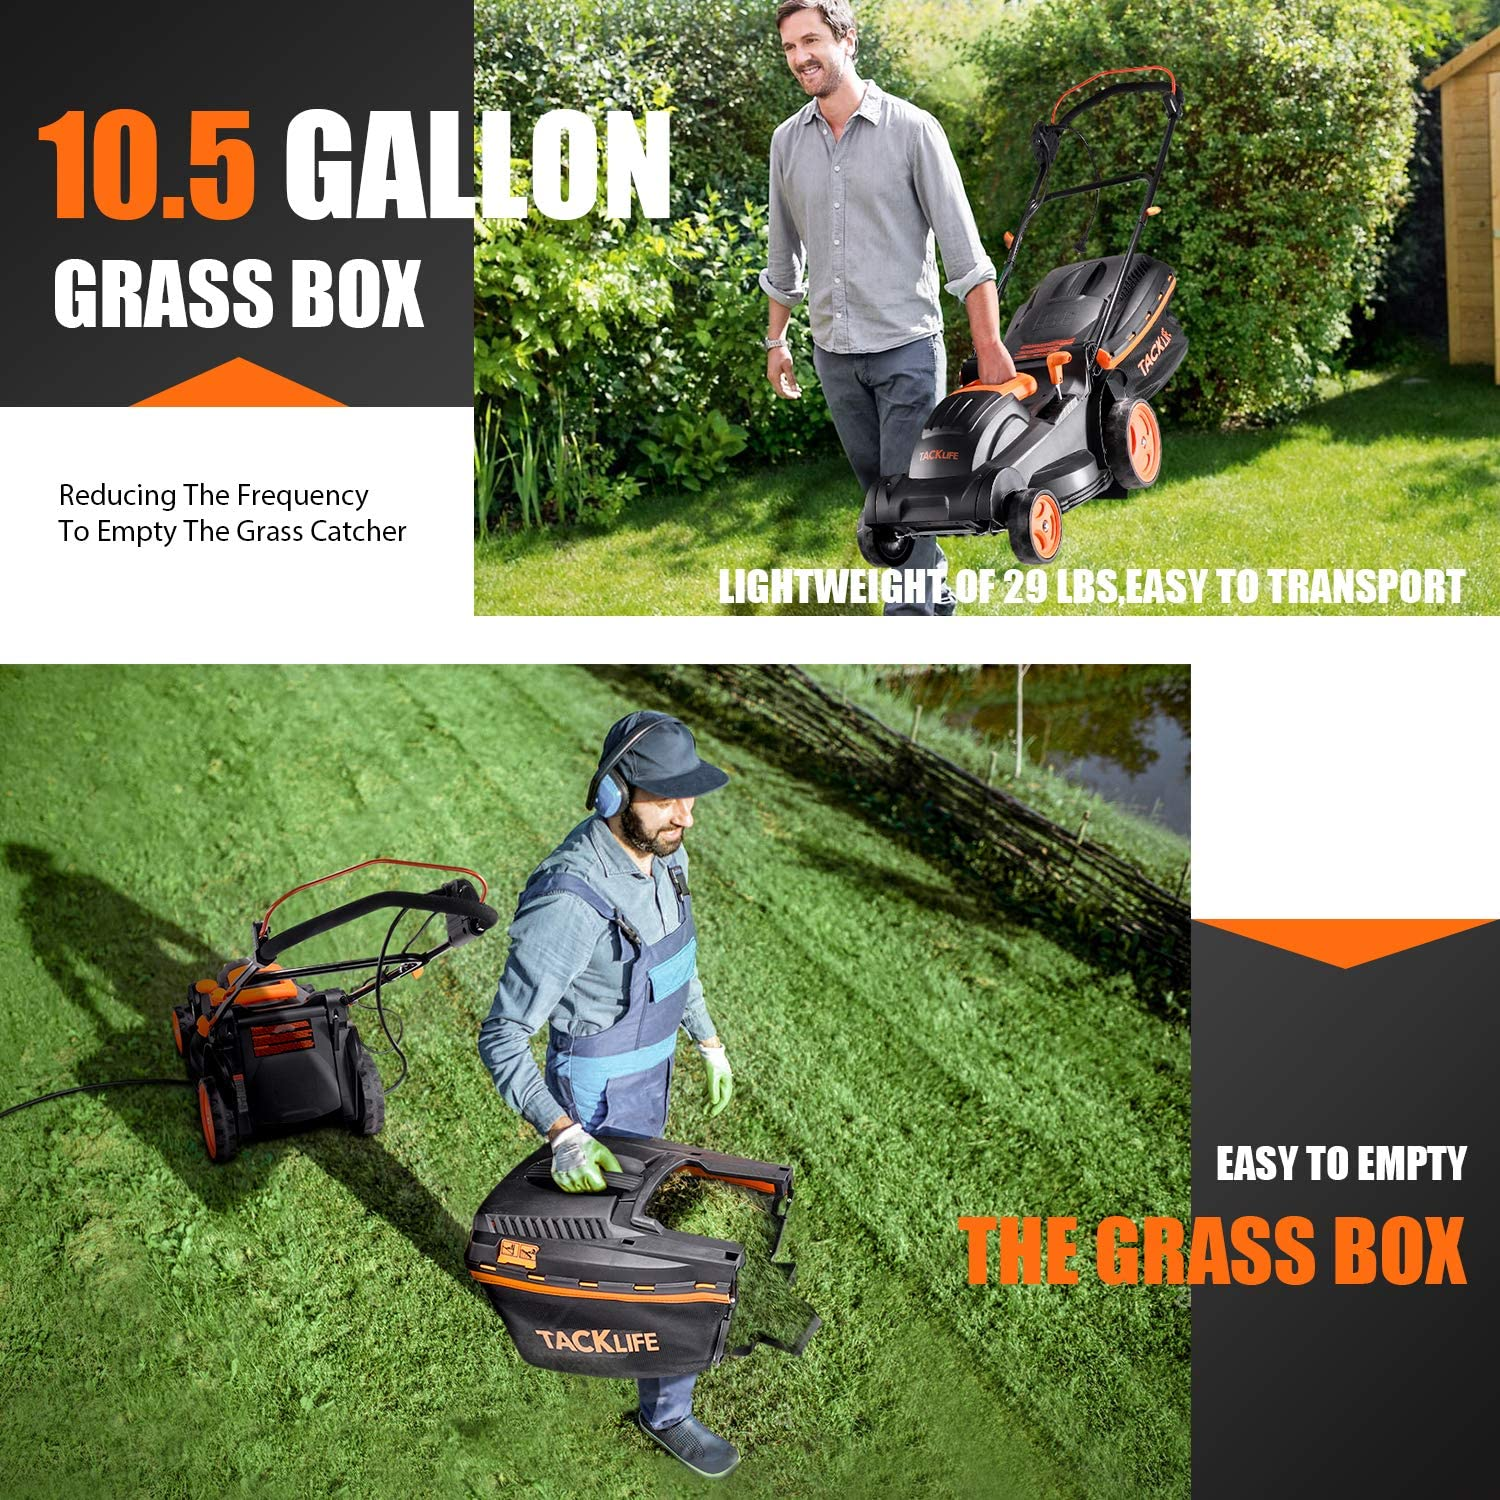 TACKLIFE Electric Lawn Mower